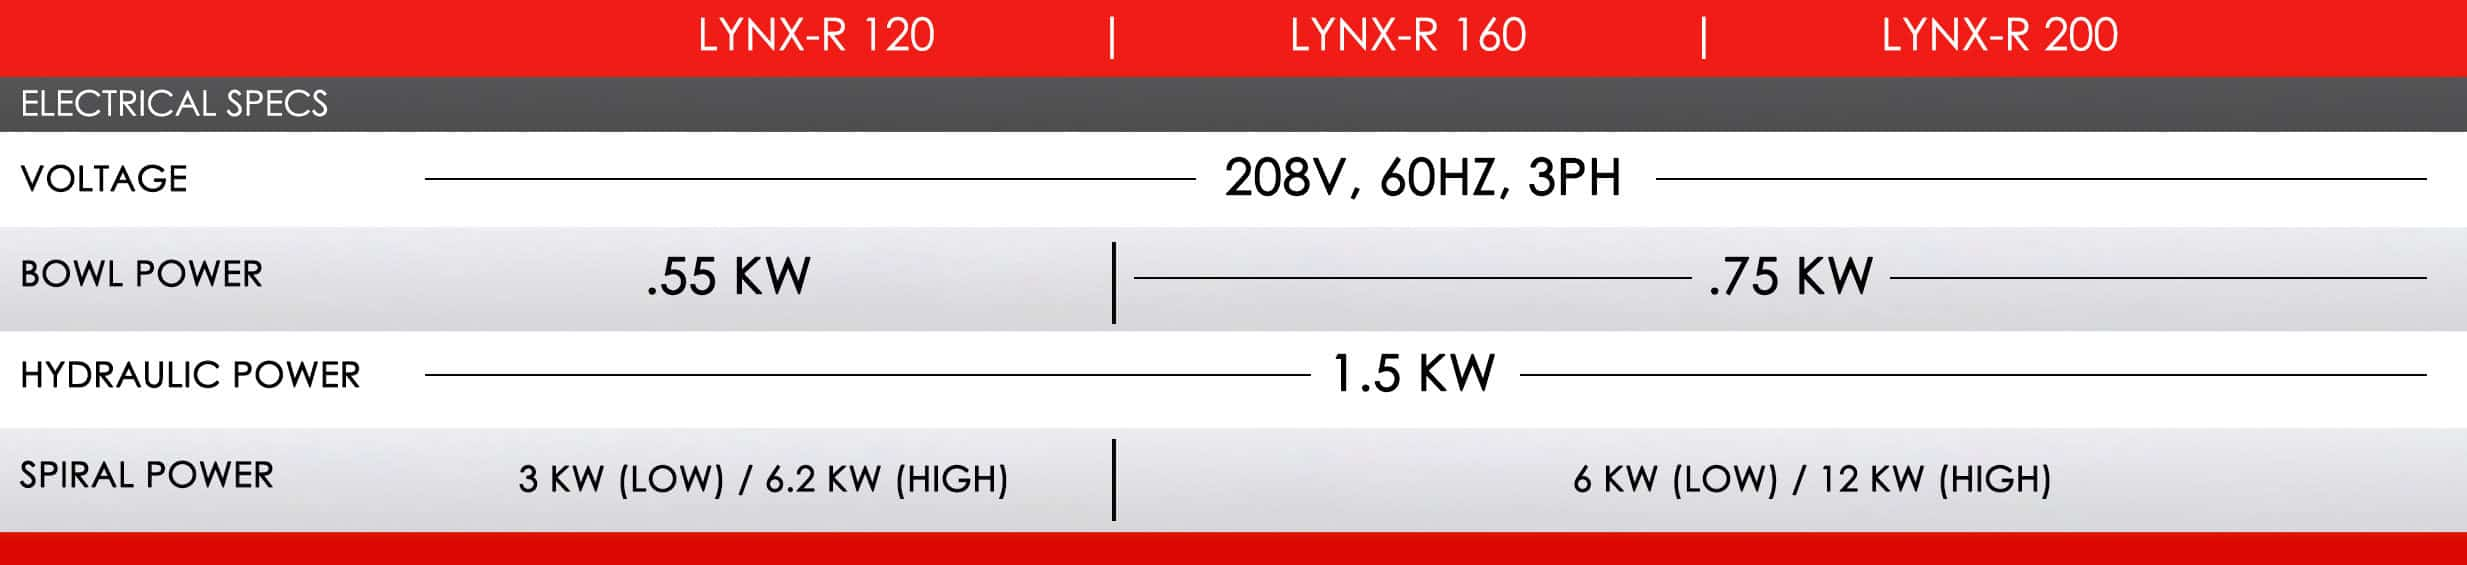 LP Group | LYNX-R Tilting Bowl Spiral Mixer, Electrical Specifications